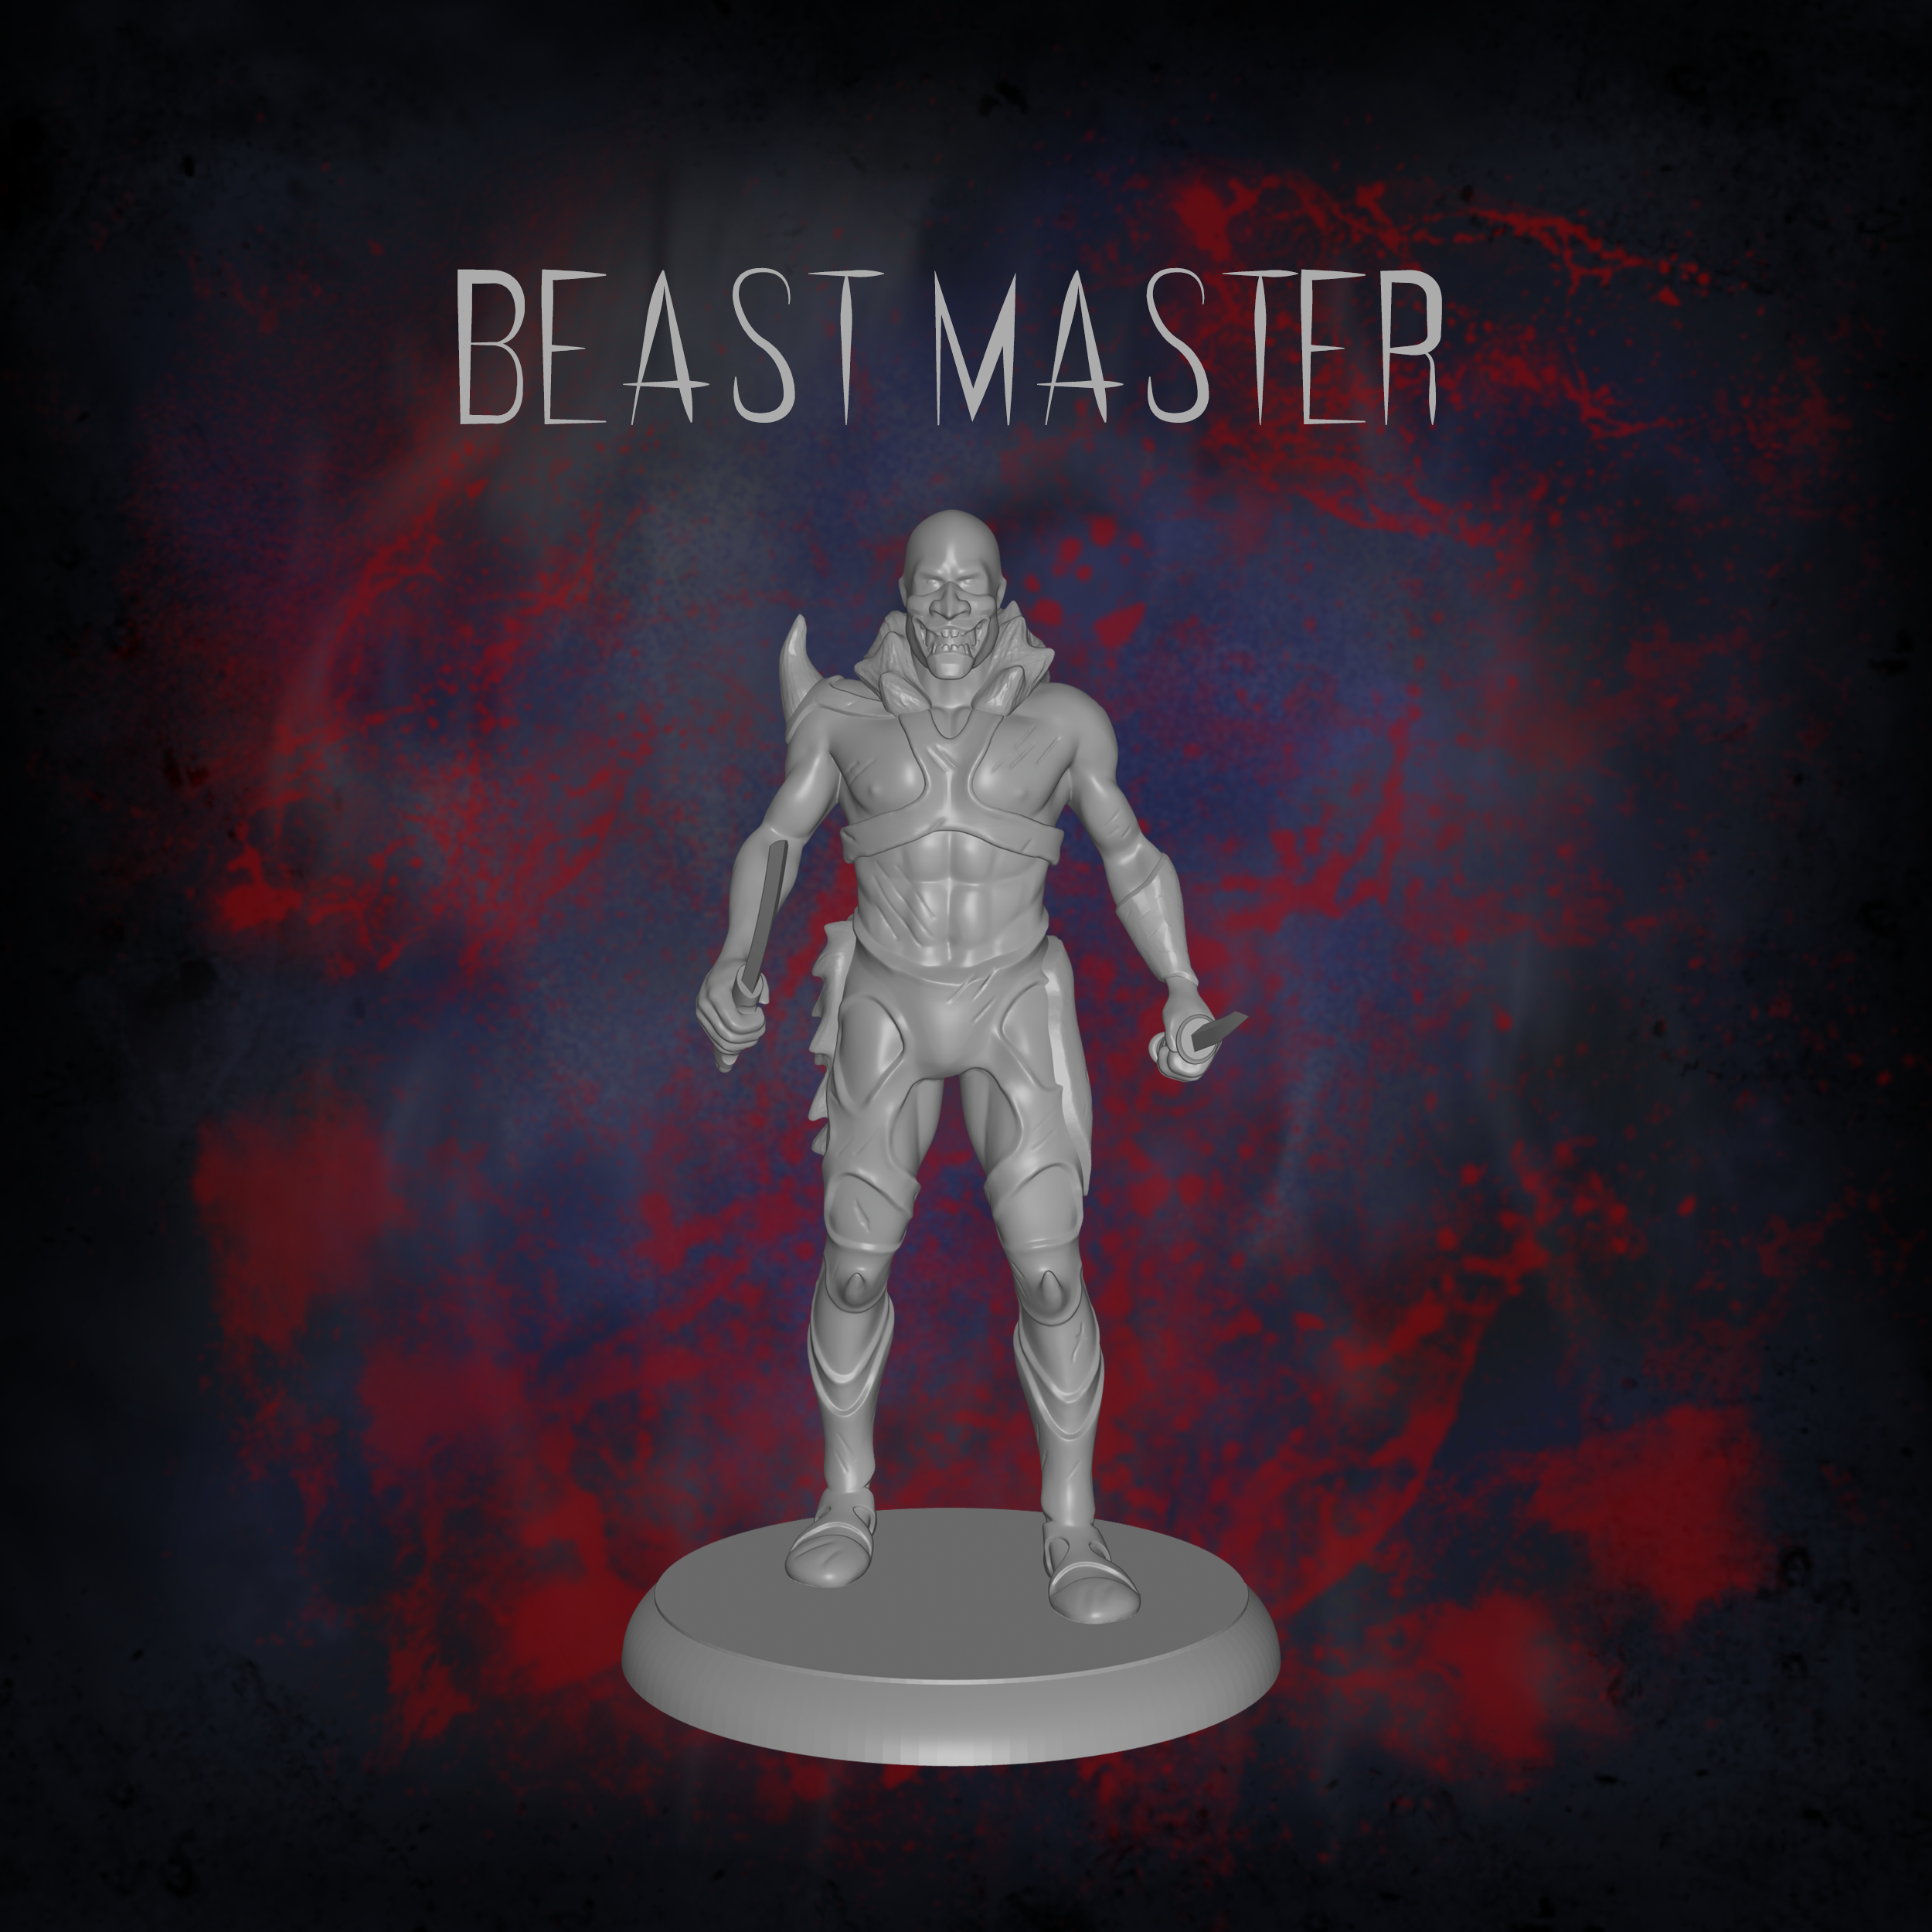 BeastMaster_Front_Text.png